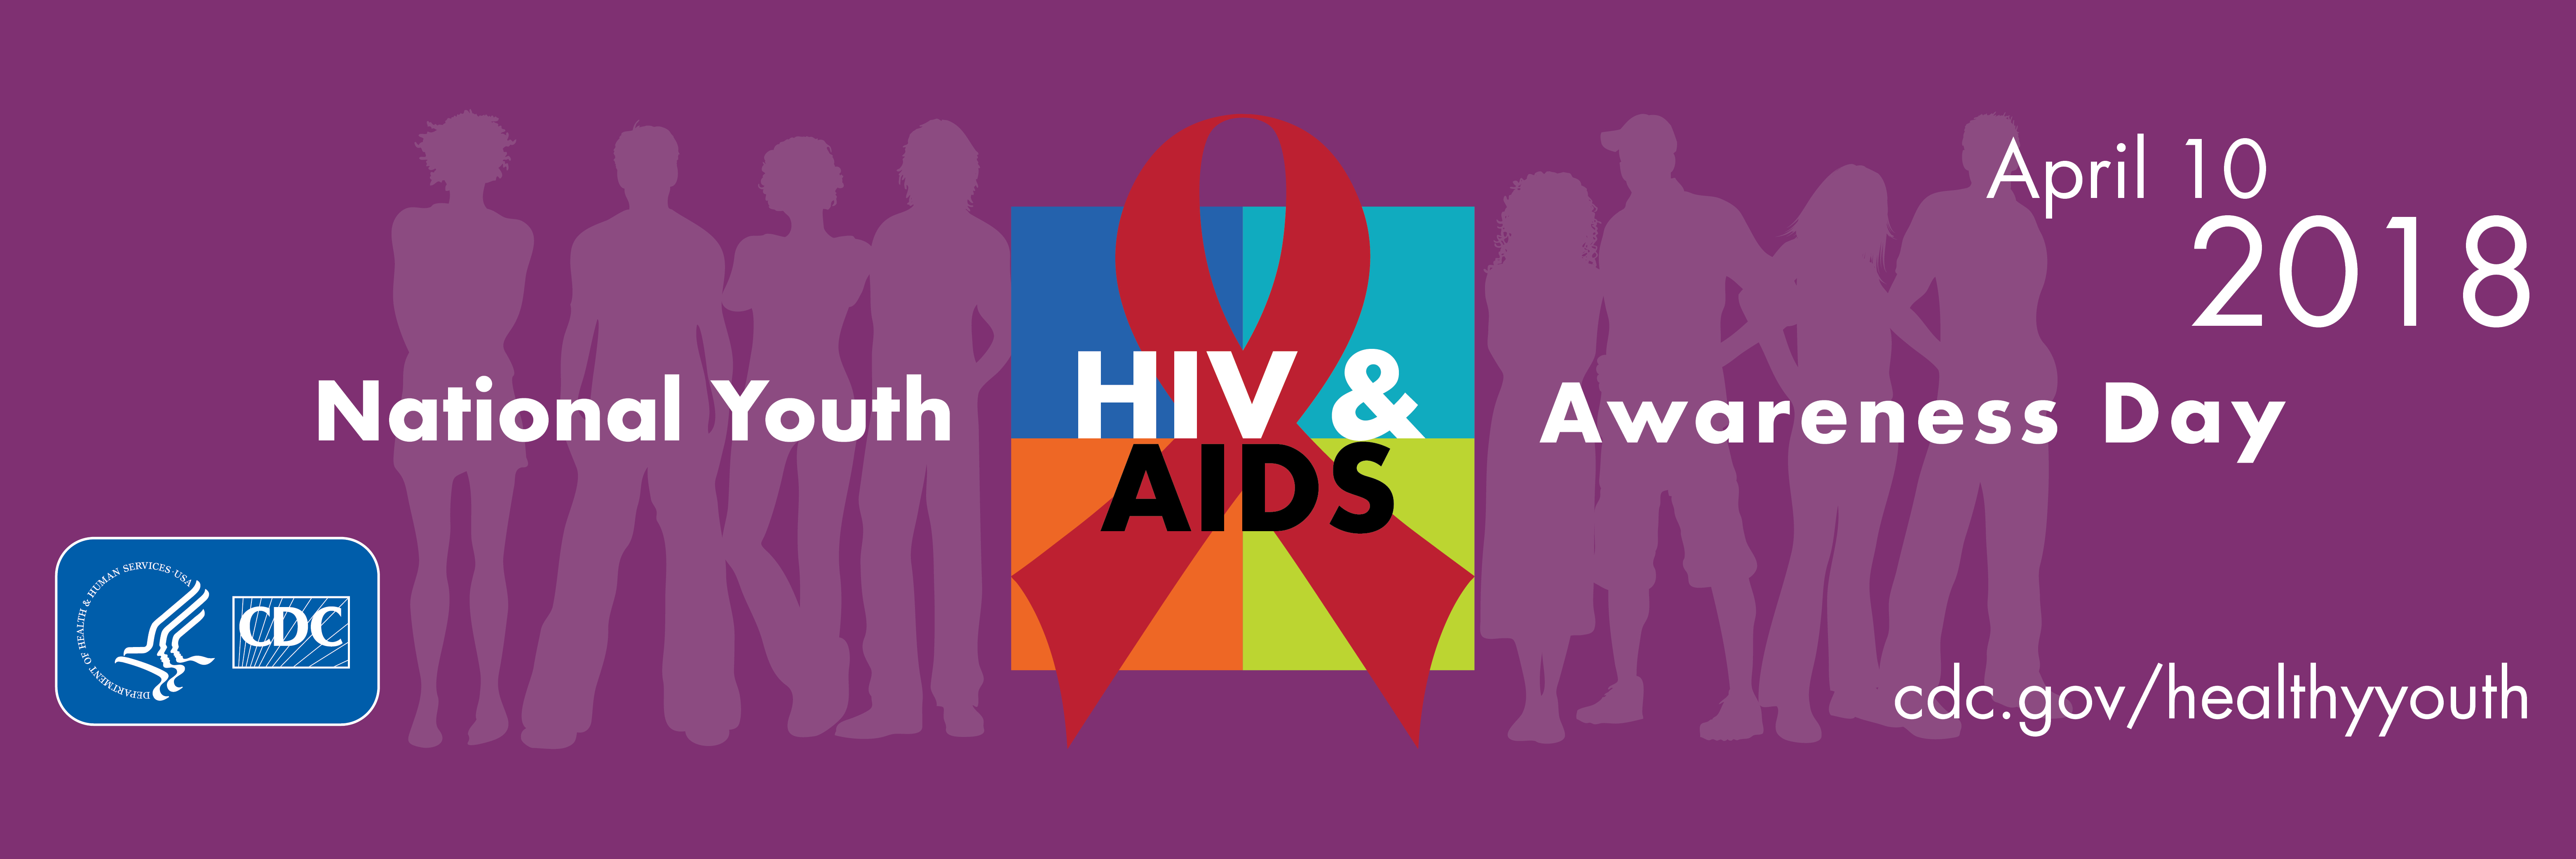 National Youth Hiv Aids Awareness Day